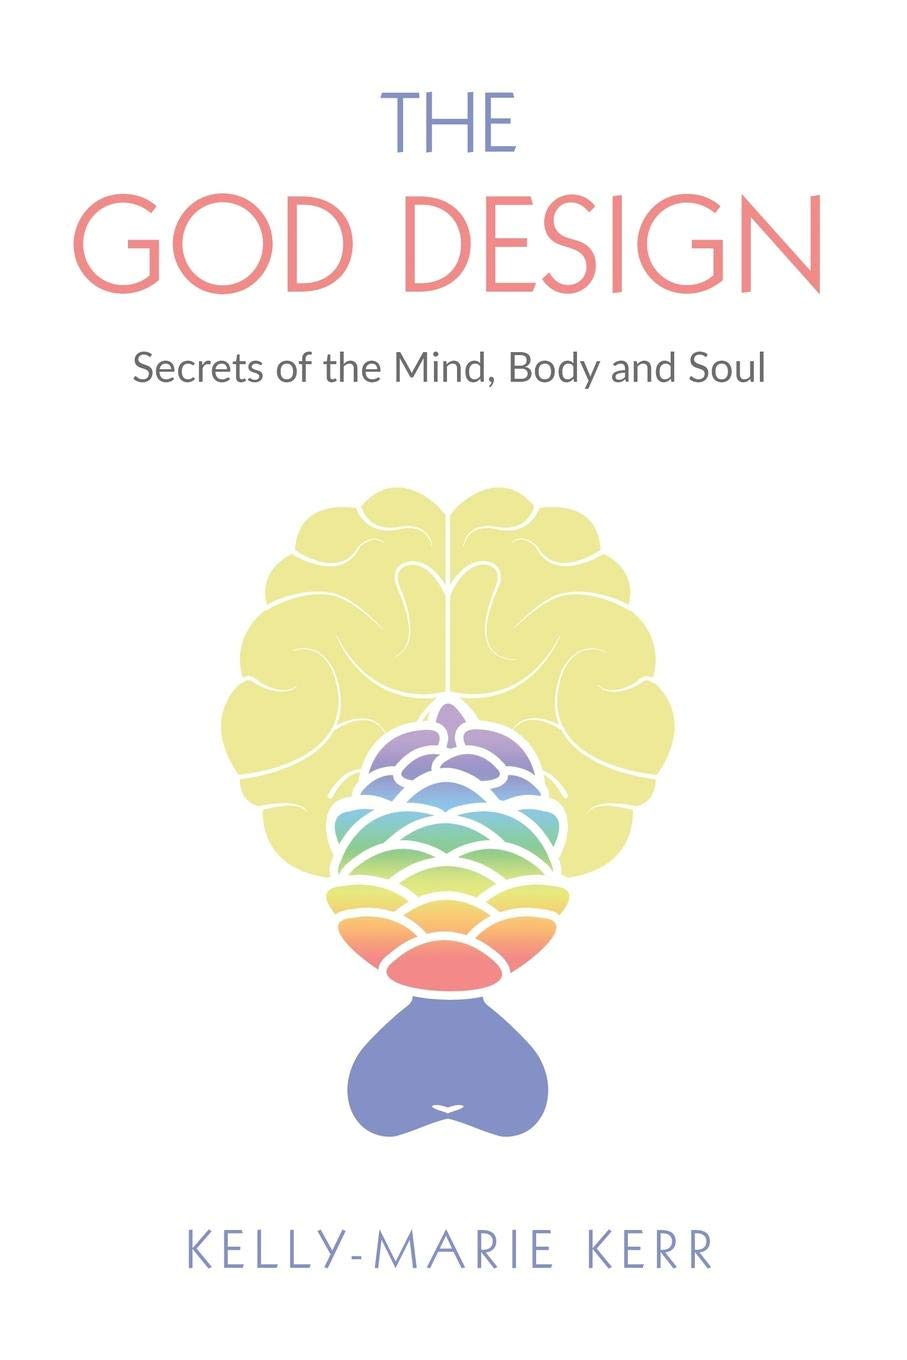 THE GOD DESIGN: Secrets of the Mind, Body and Soul: Amazon.es: Kelly ...